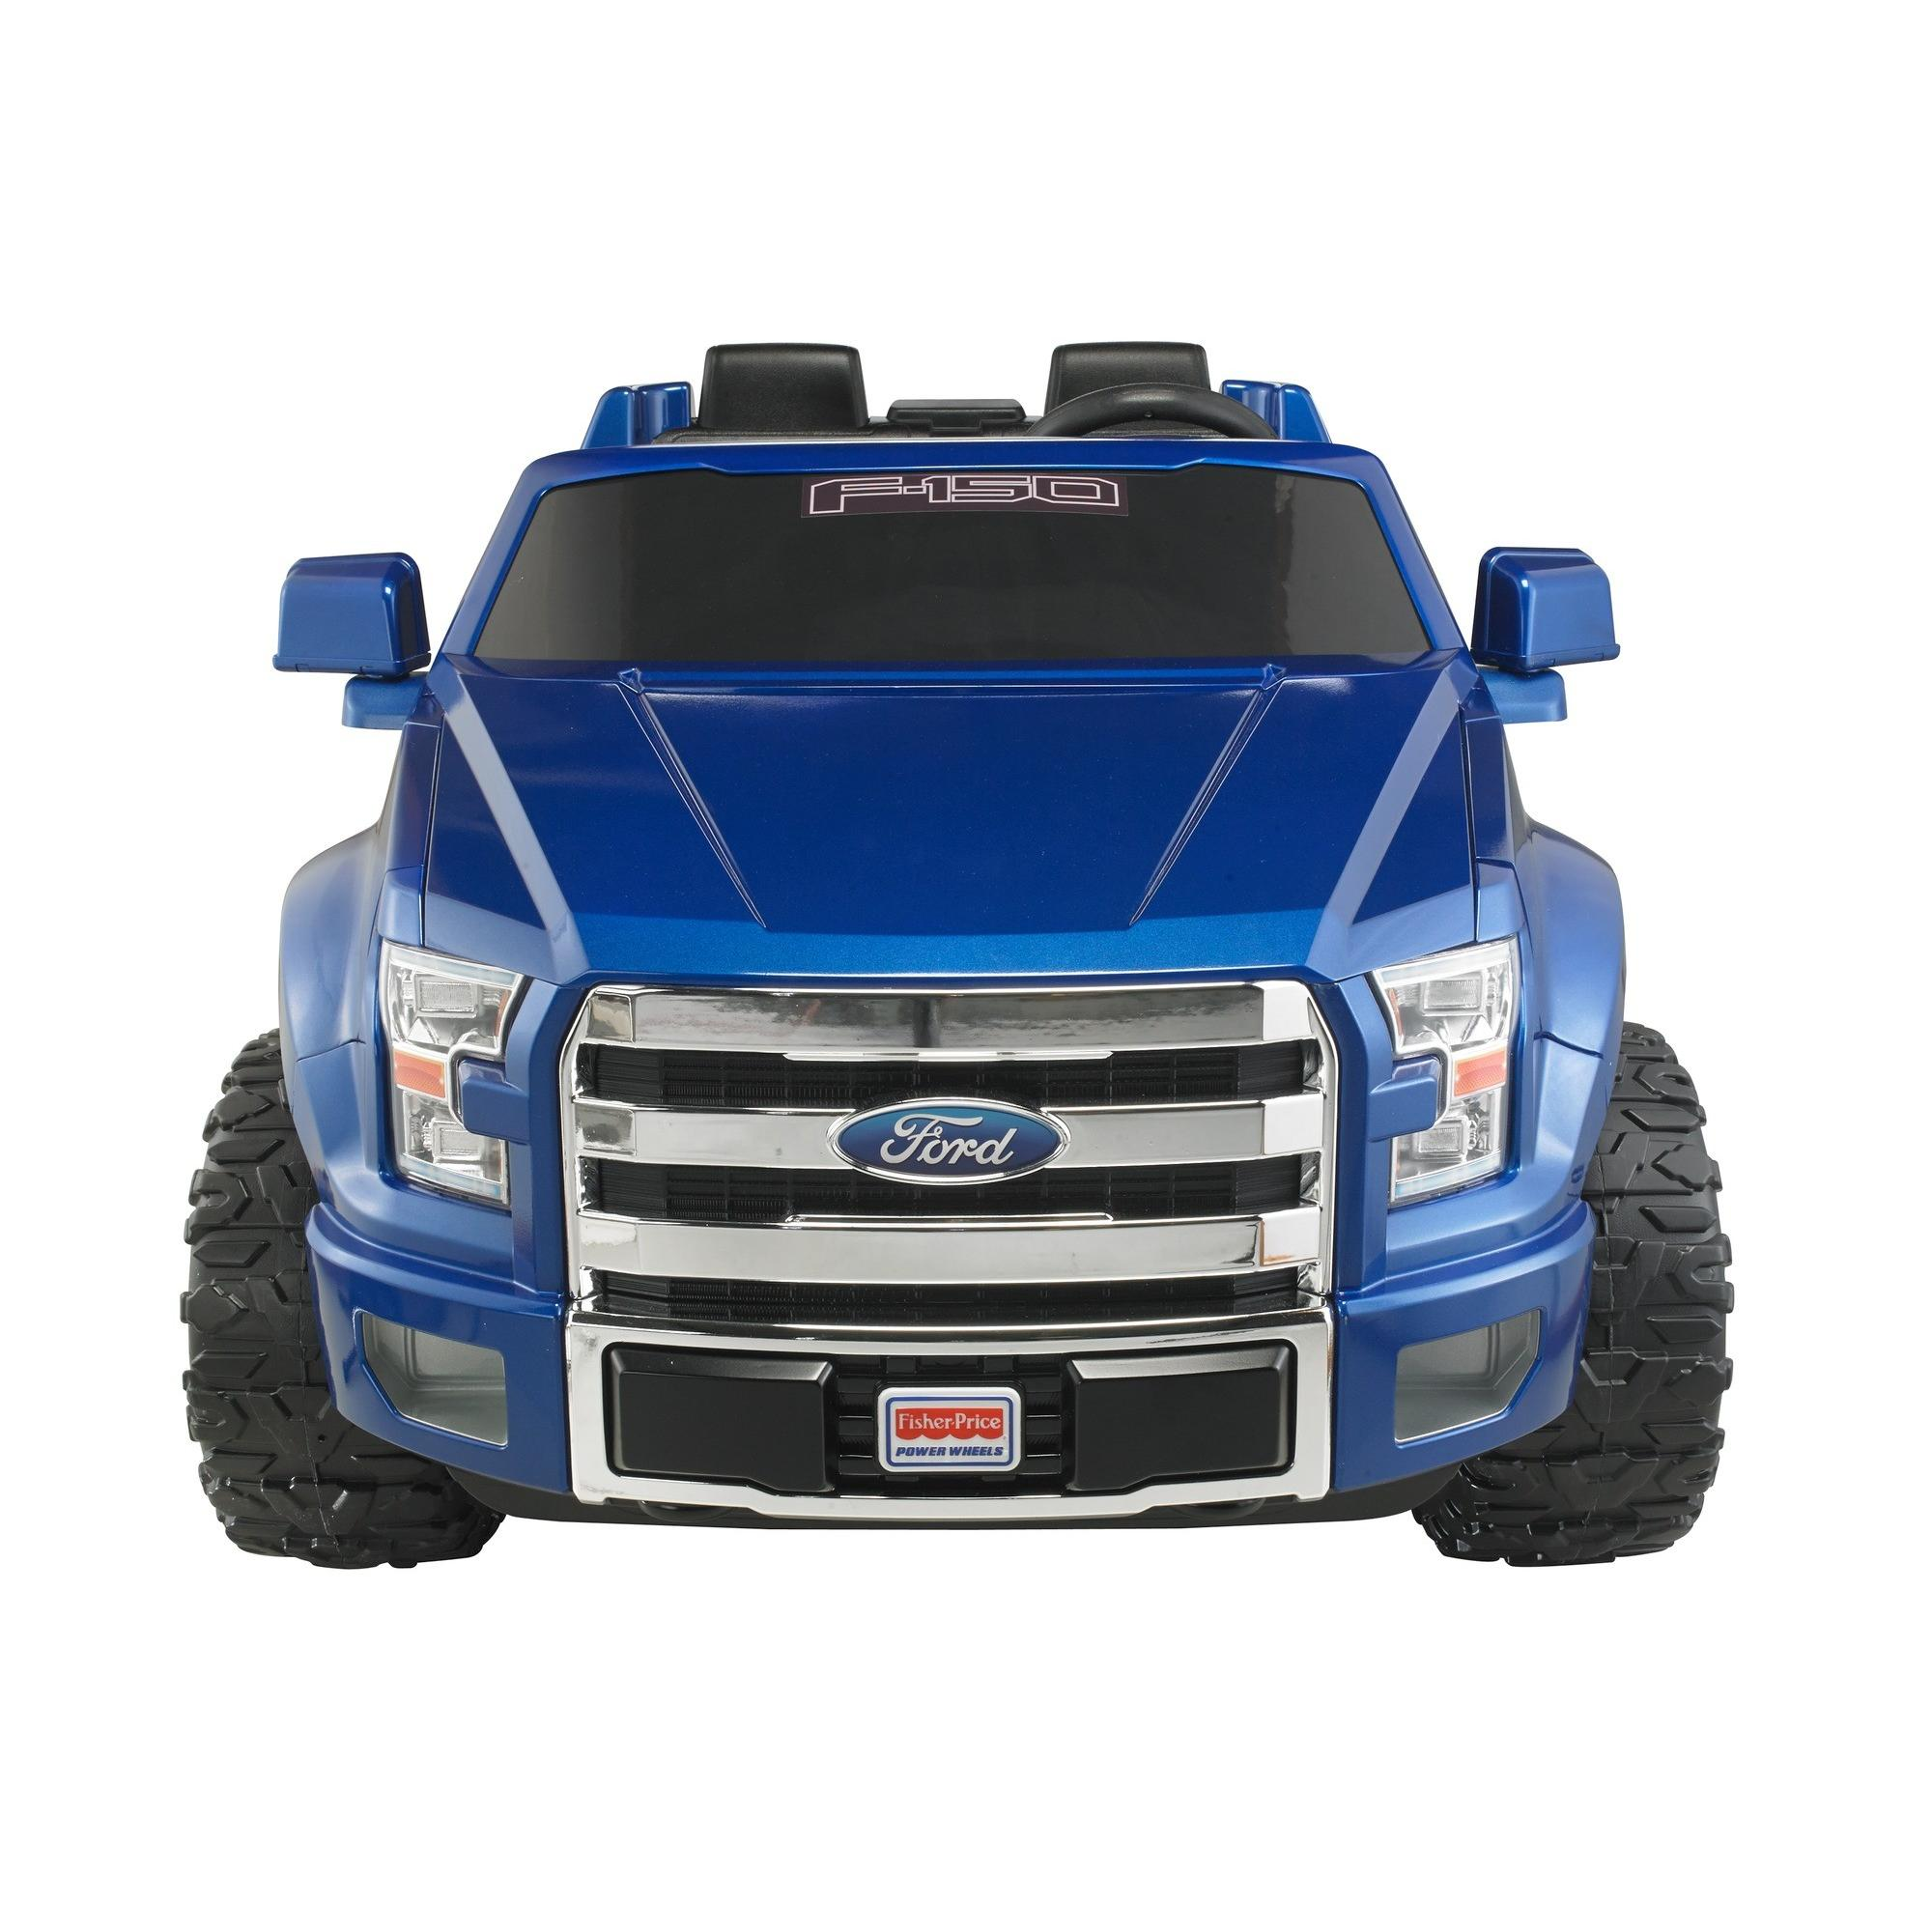 Power wheels ford f 150 12 volt battery powered ride on walmart fandeluxe Gallery